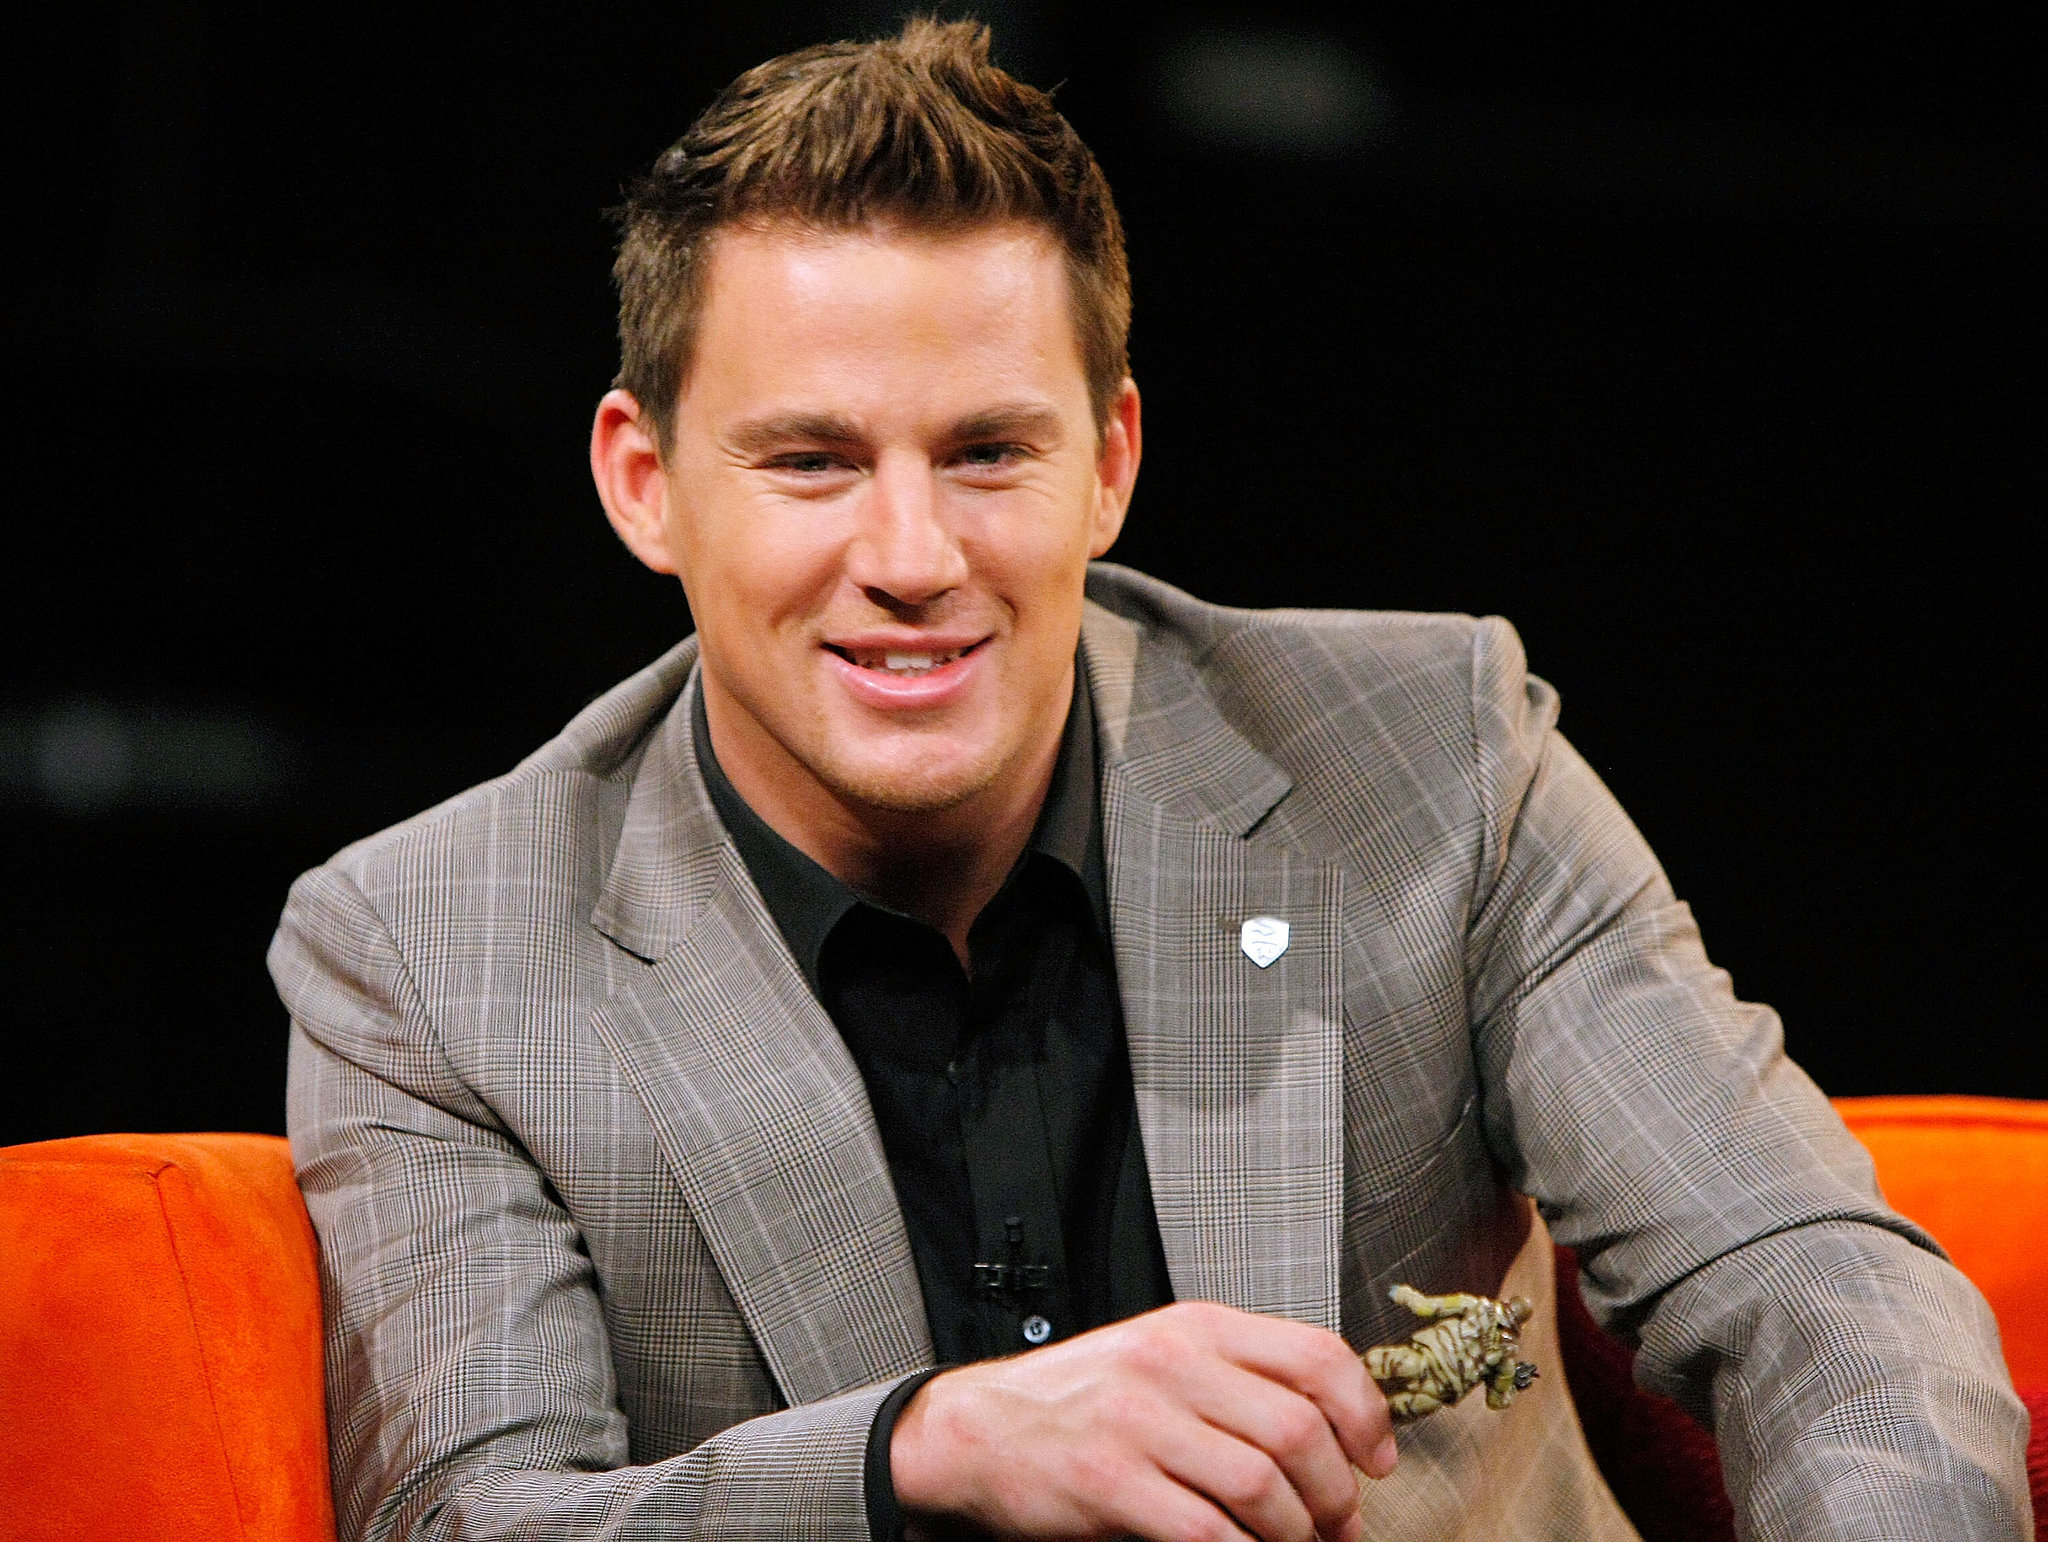 Channing showed off his infectious grin during a chat about his G.I. Joe character in NYC in August 2009.